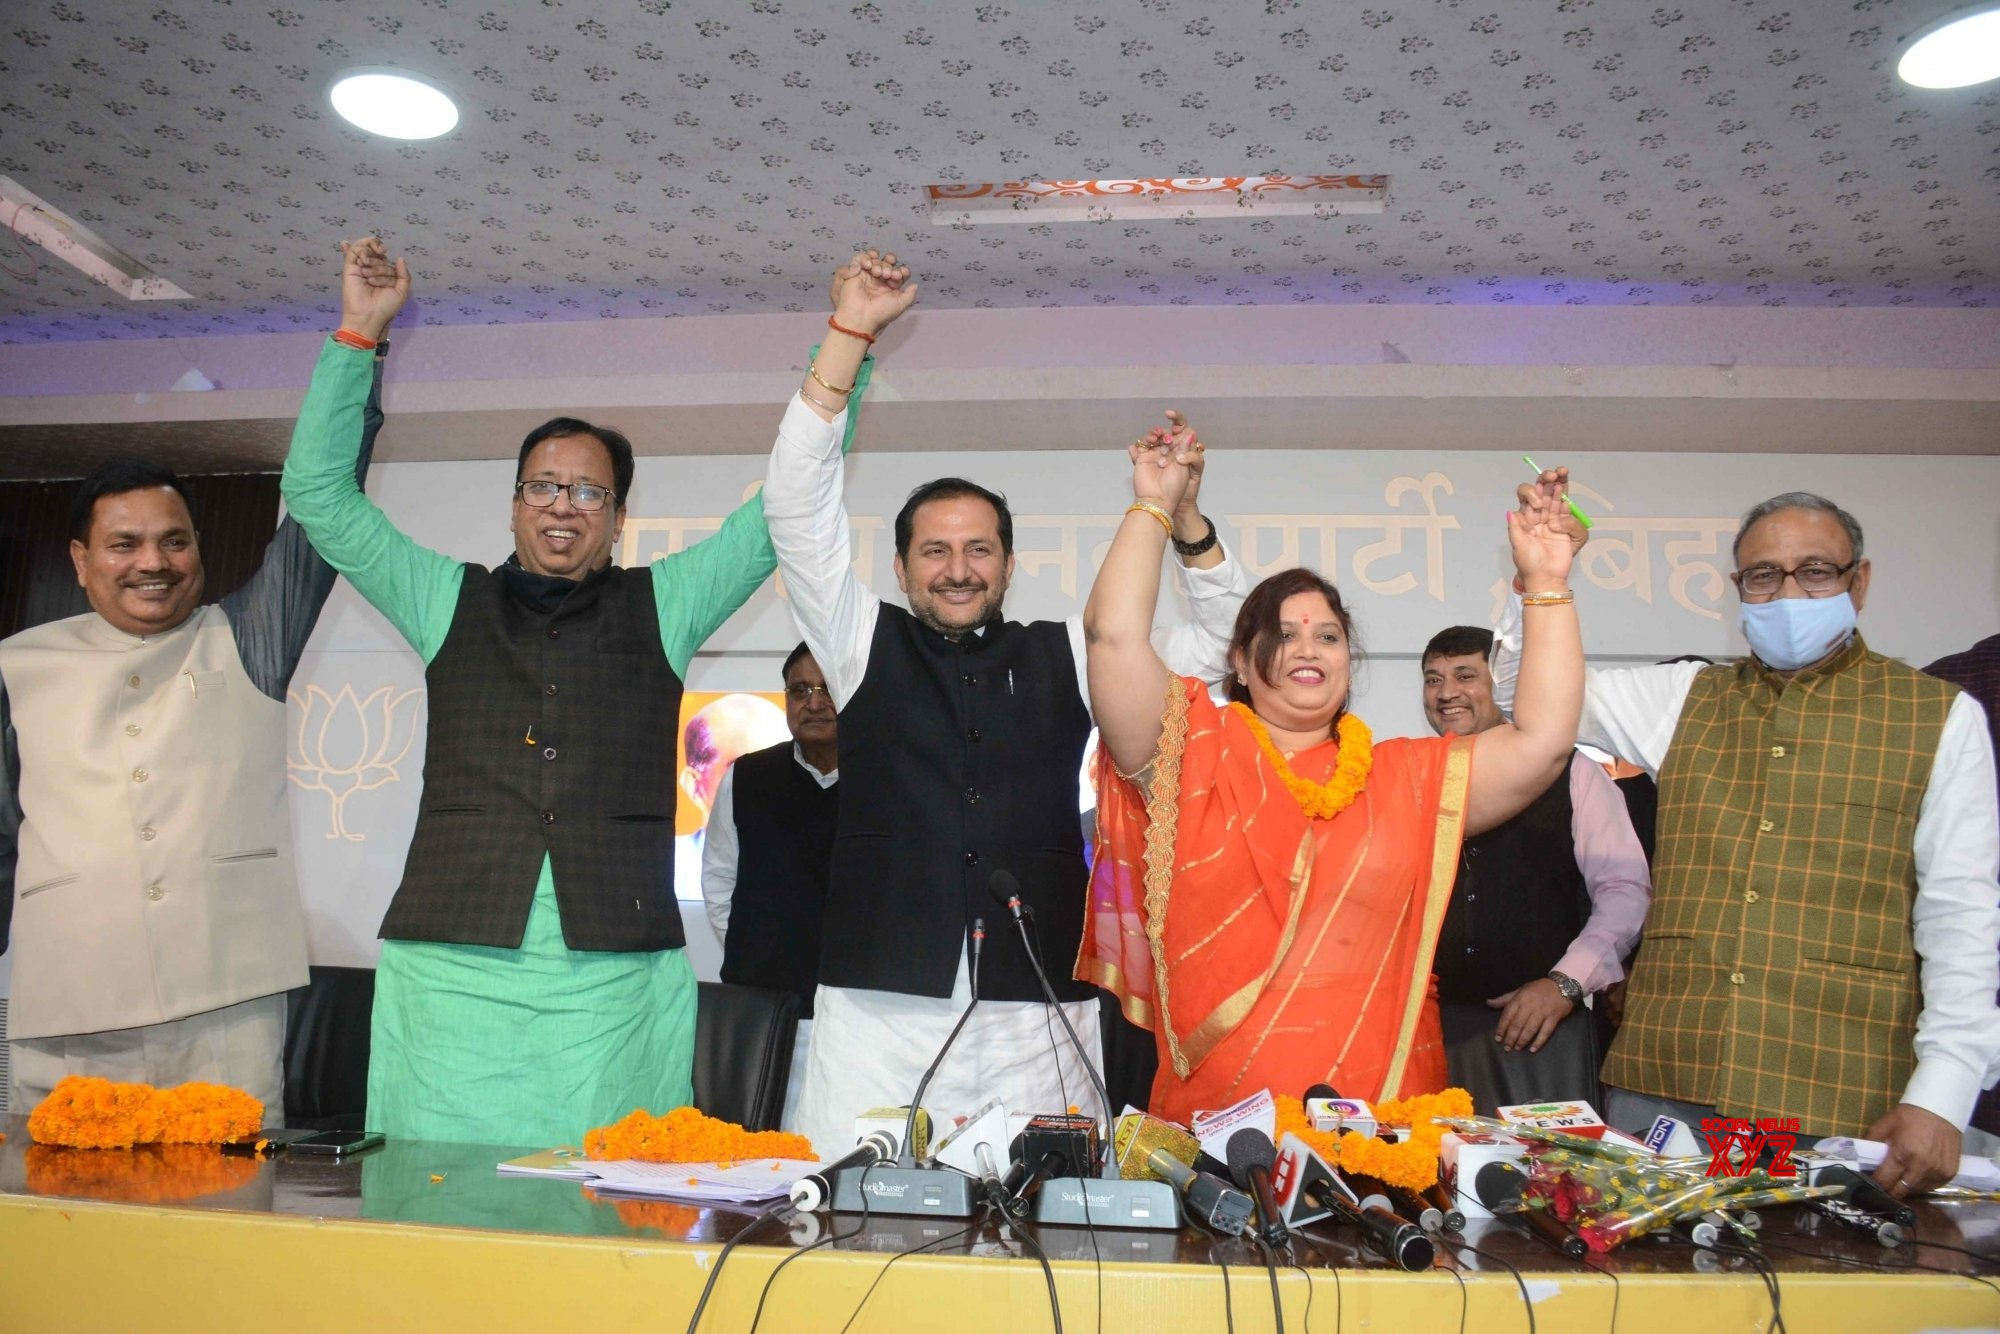 Patna: Lok Janshakti Party MLC Nutan Singh joined hands with BJP state president Sanjay Jaiswal after joining BJP in Patna on - Monday 22nd February, 2021 #Gallery